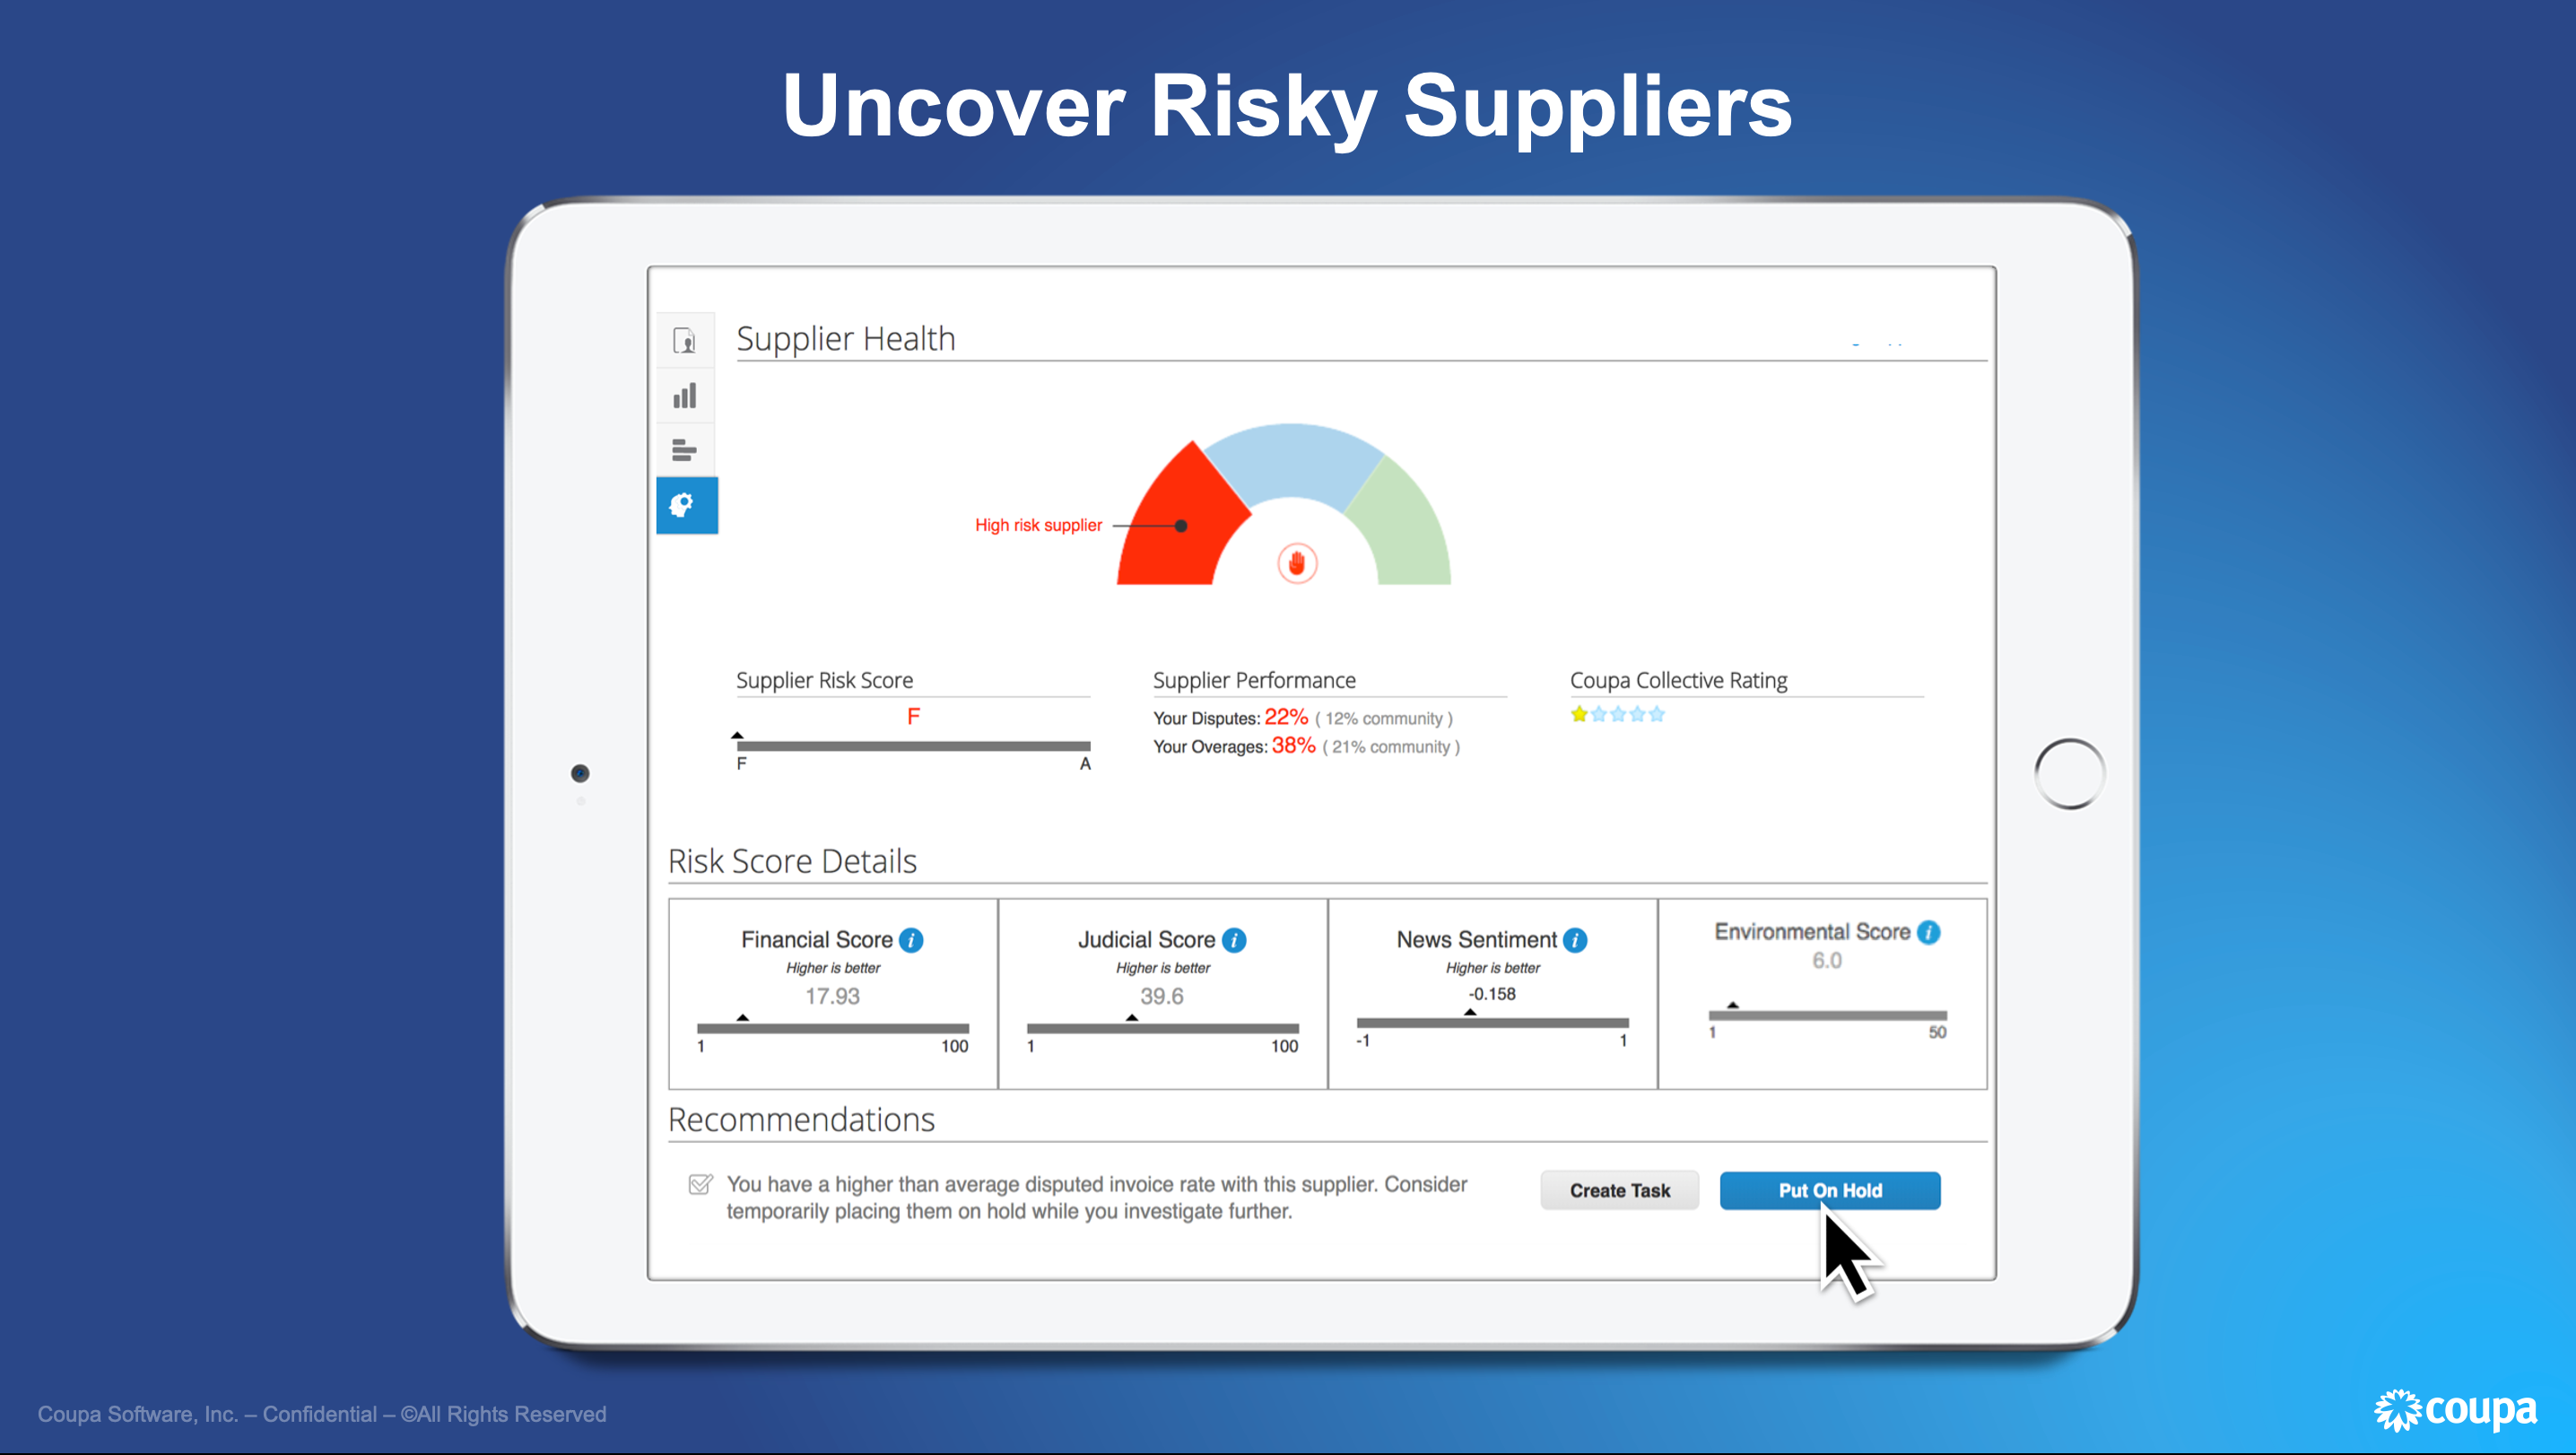 Coupa Business Spend Management Software - Uncover Risky Suppliers